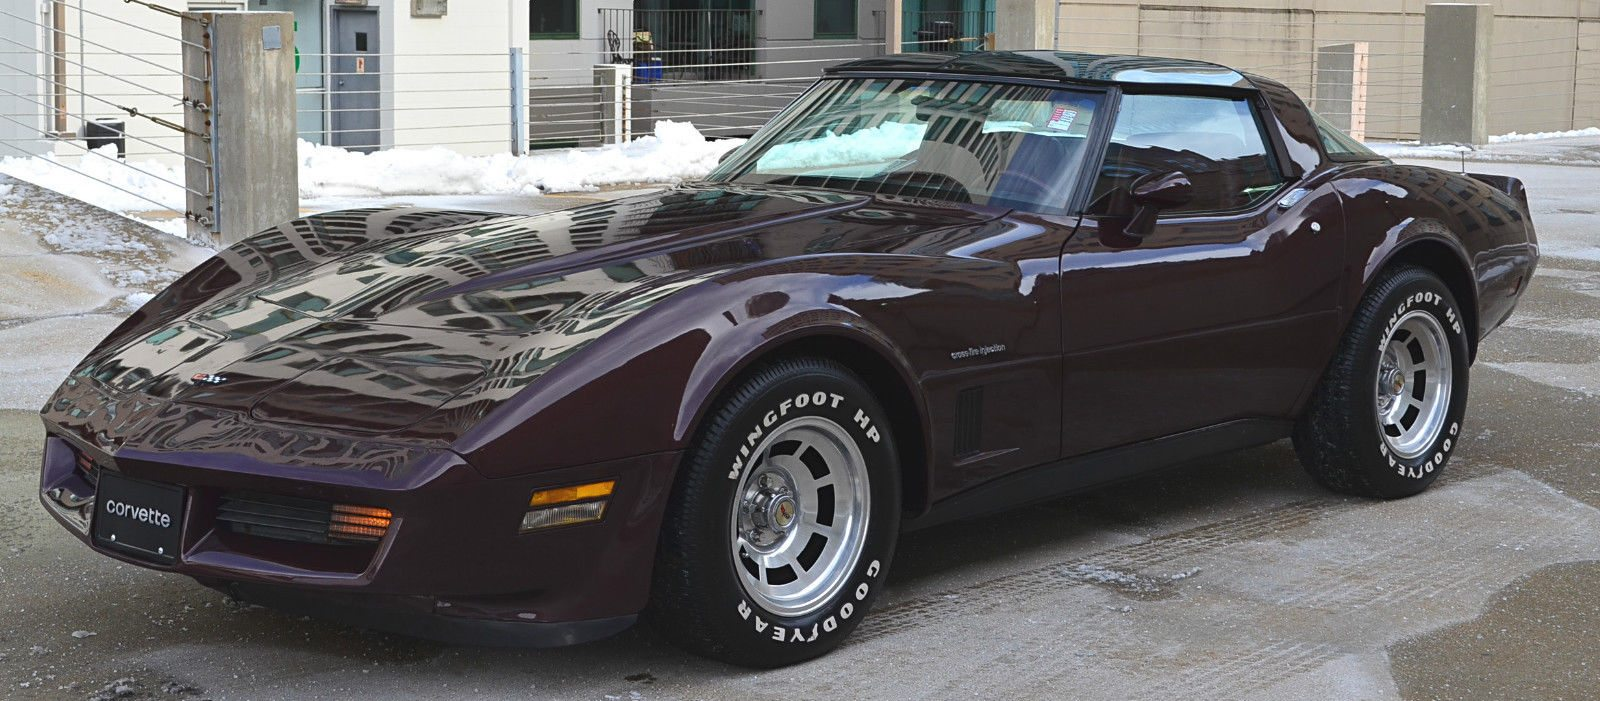 Best Car Paint Colors >> 1982 C3 Corvette | Image Gallery & Pictures